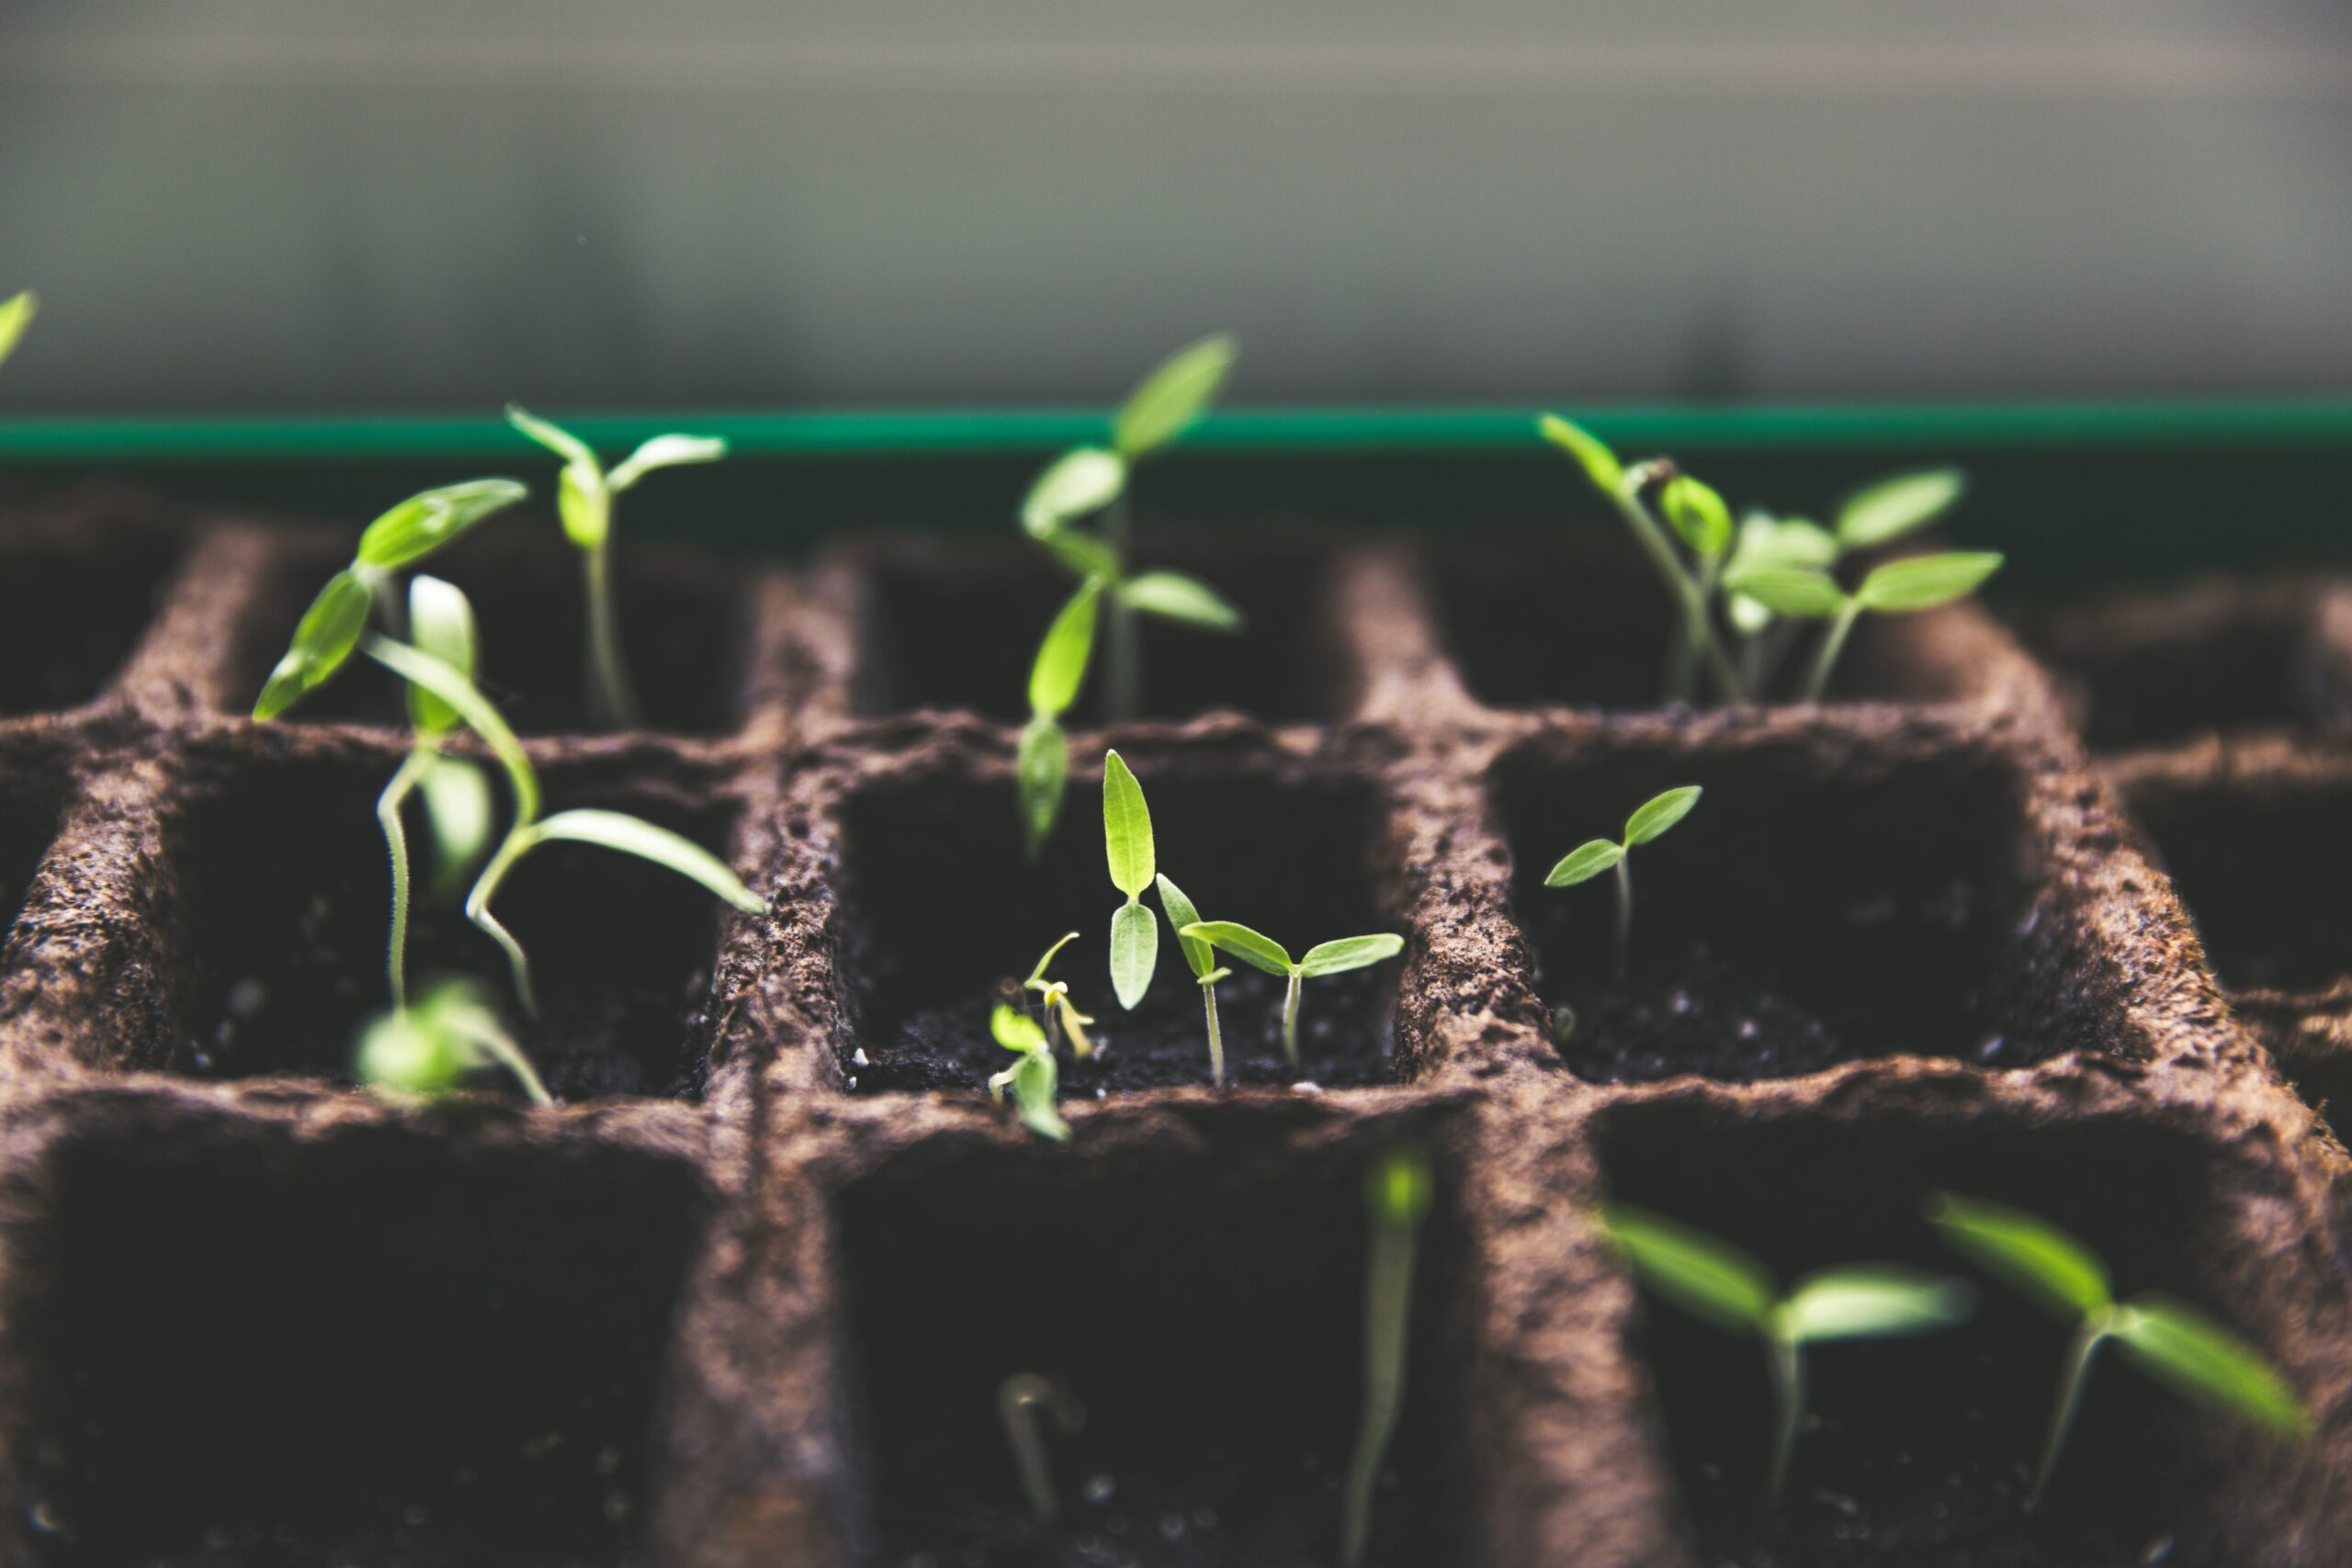 Life begins to grow